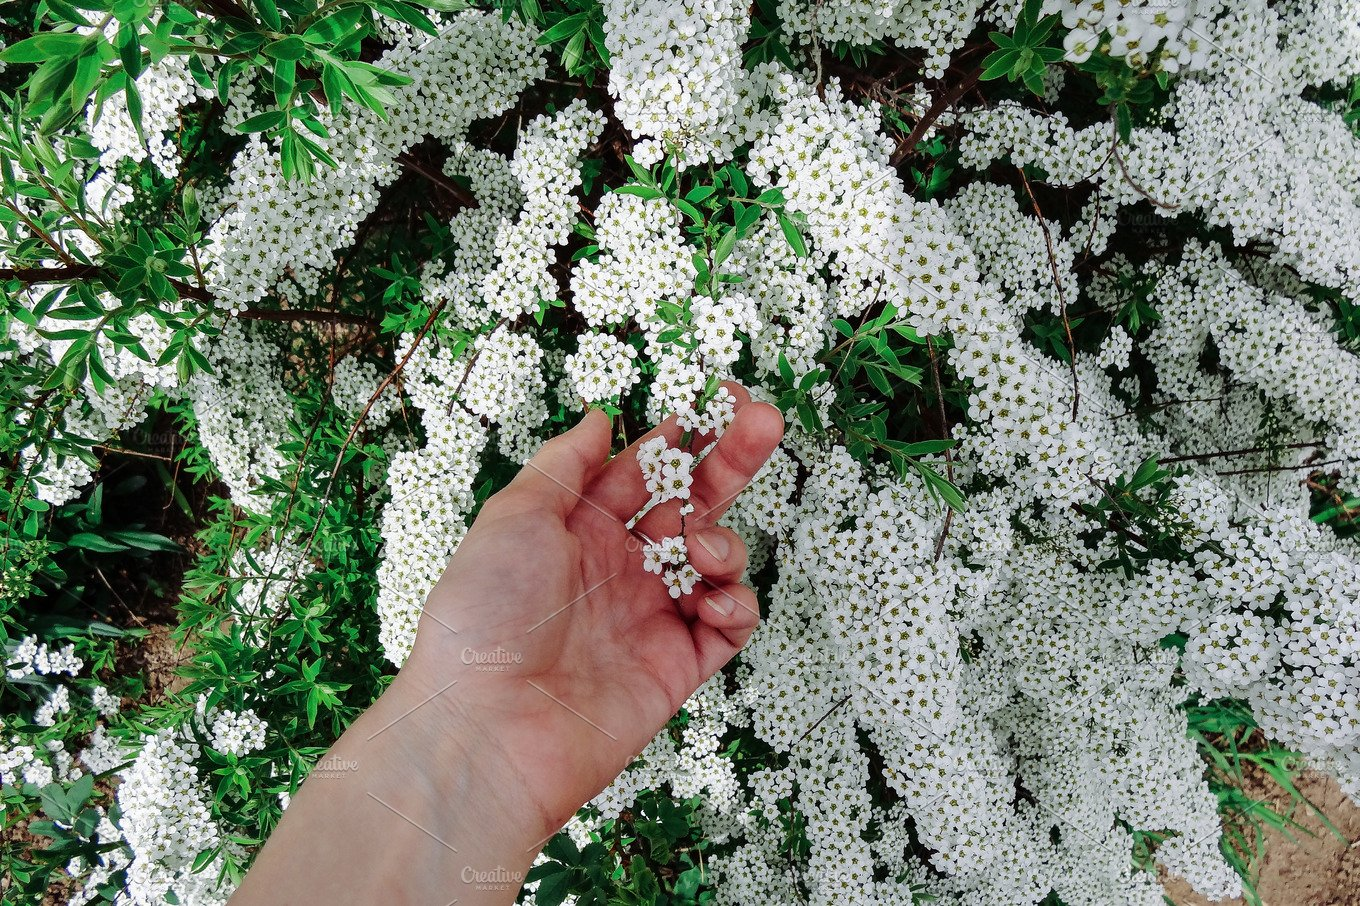 Spiraea alpine meadowsweet spring flower white blossoming shrub spiraea alpine meadowsweet spring flower white blossoming shrub with hand bush of the tiny white flowers nature photos creative market mightylinksfo